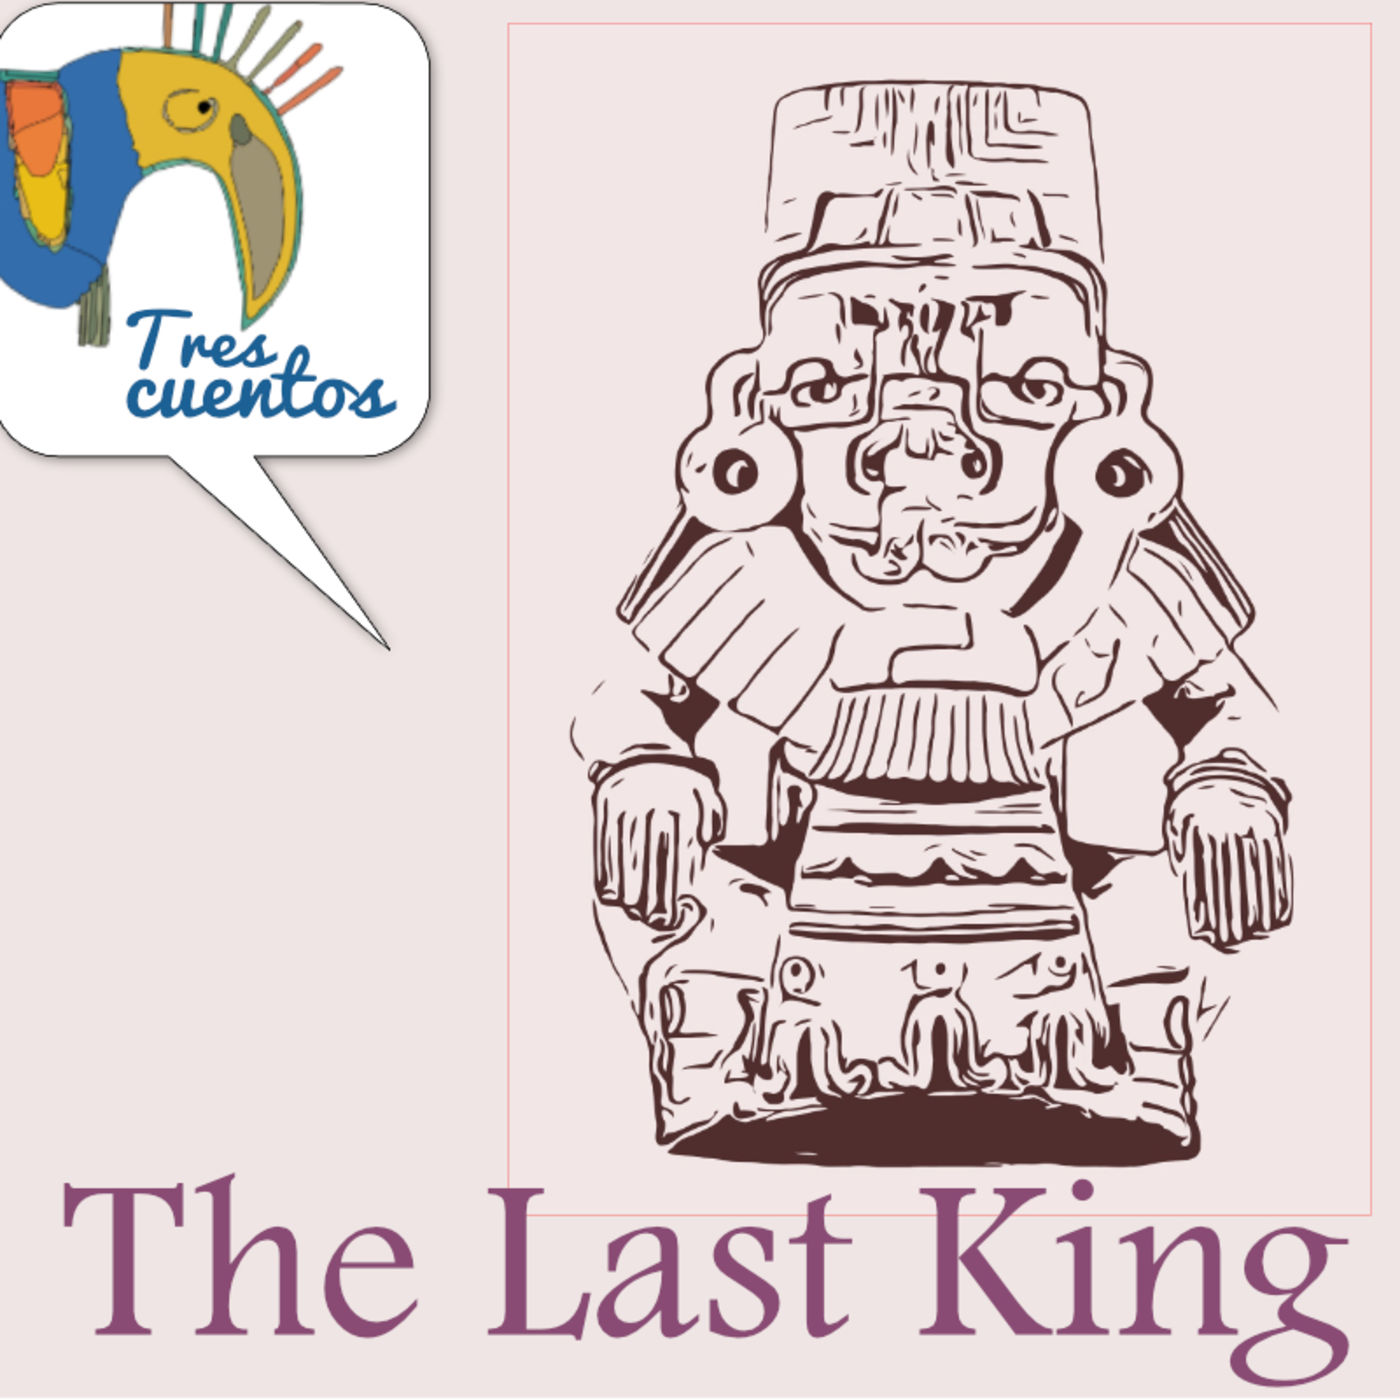 10- Historical Narratives - Cosijoeza the Zapotec King - Mexico